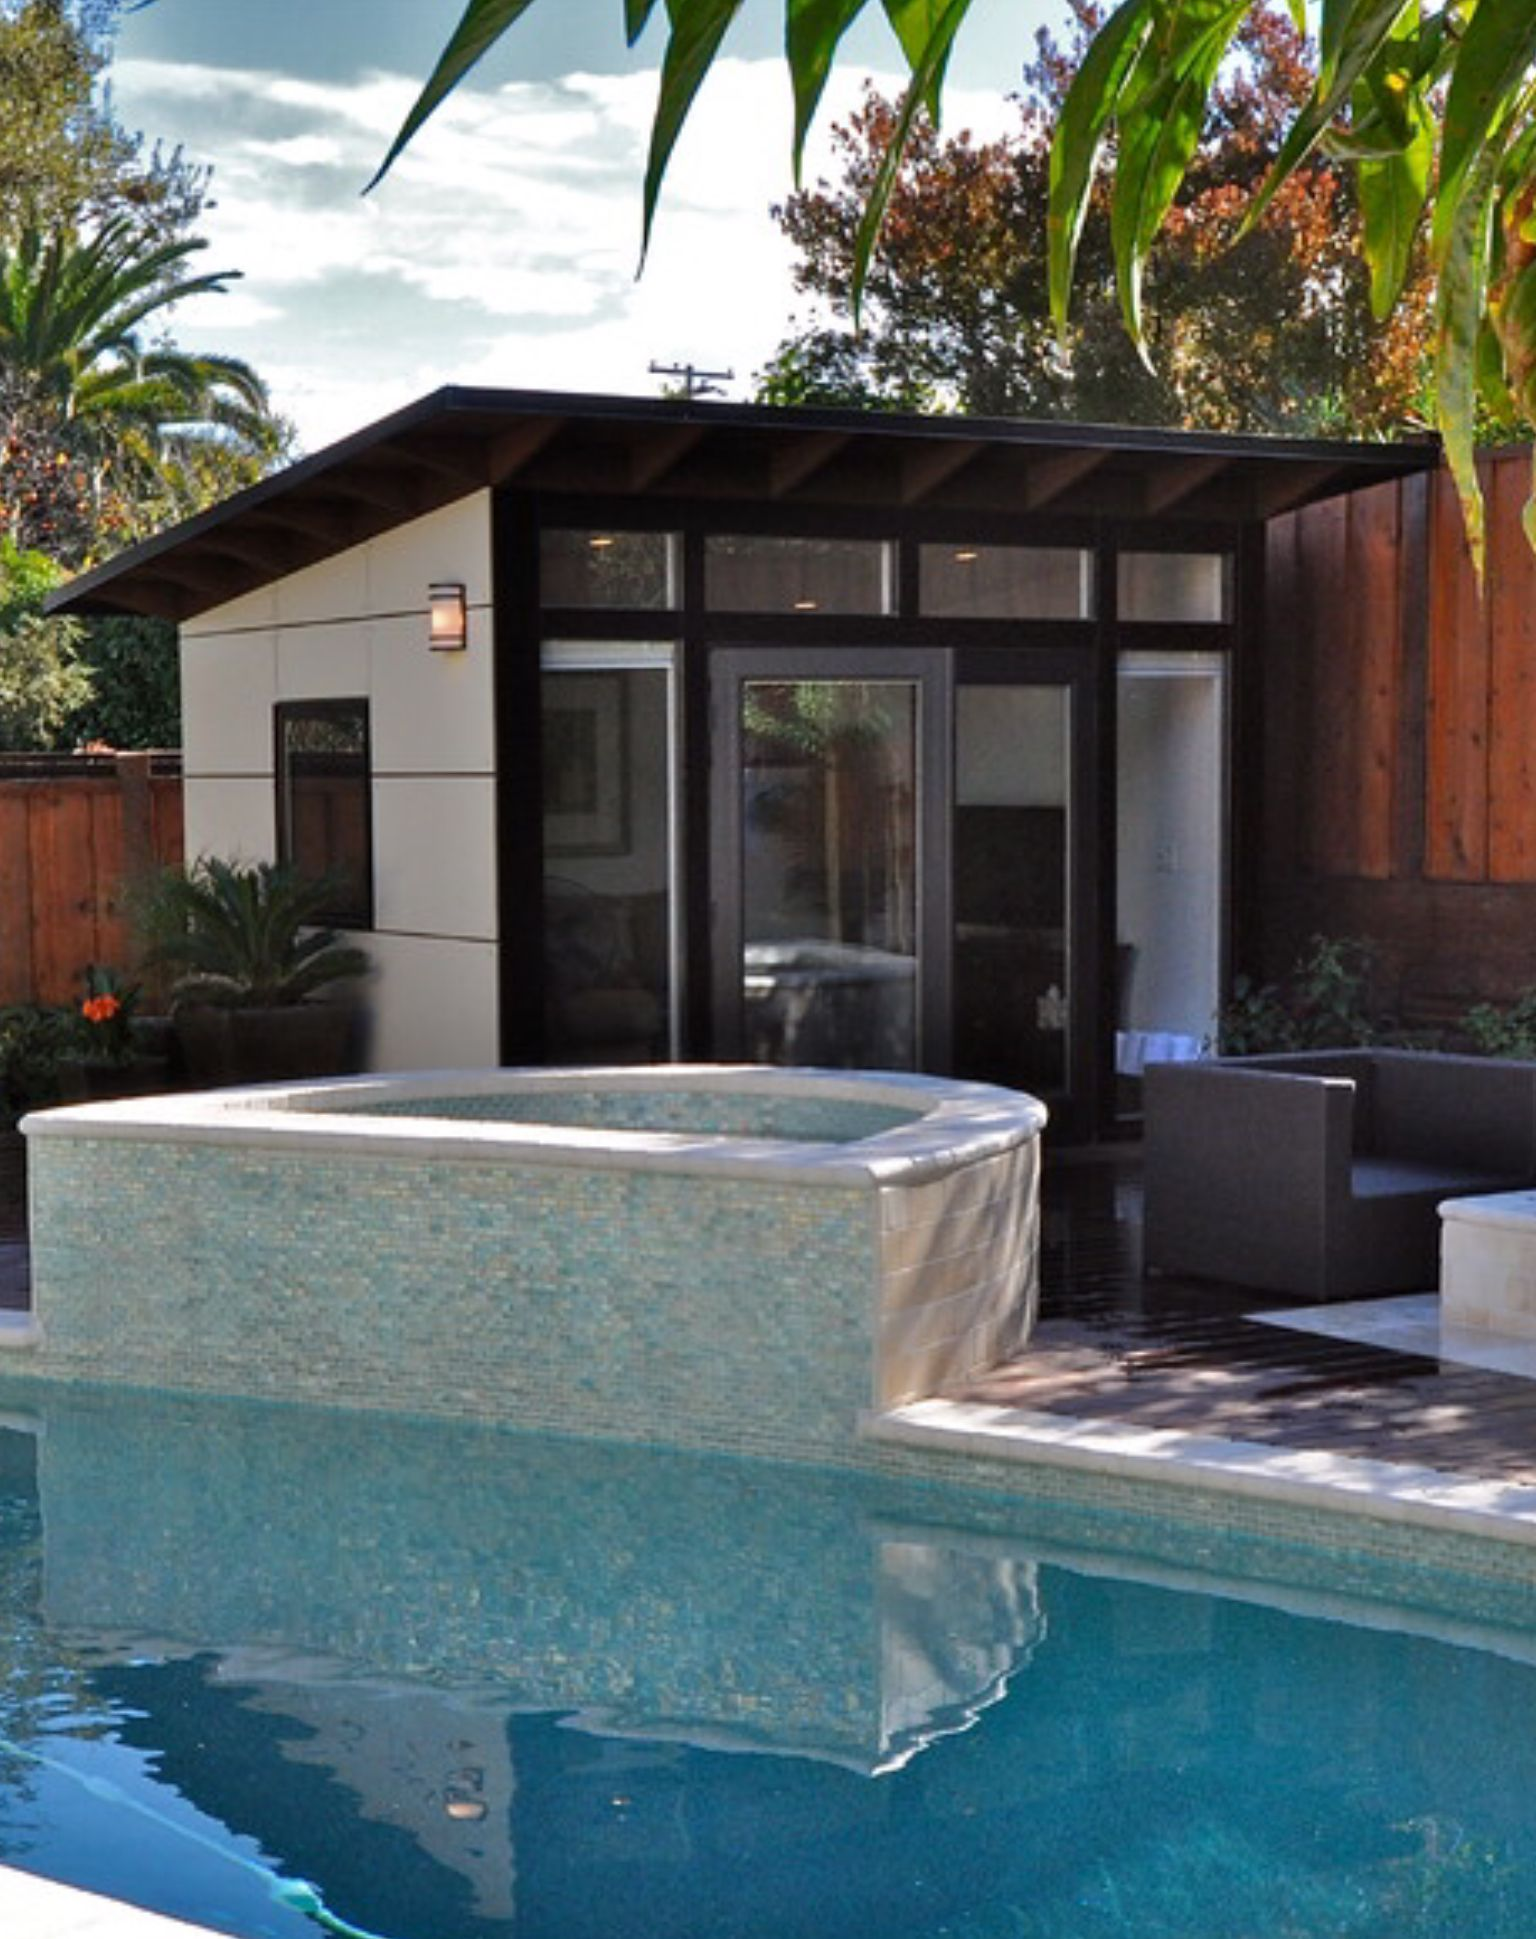 10x16 Modern Pool House Casita Guest House Pool Houses Pool